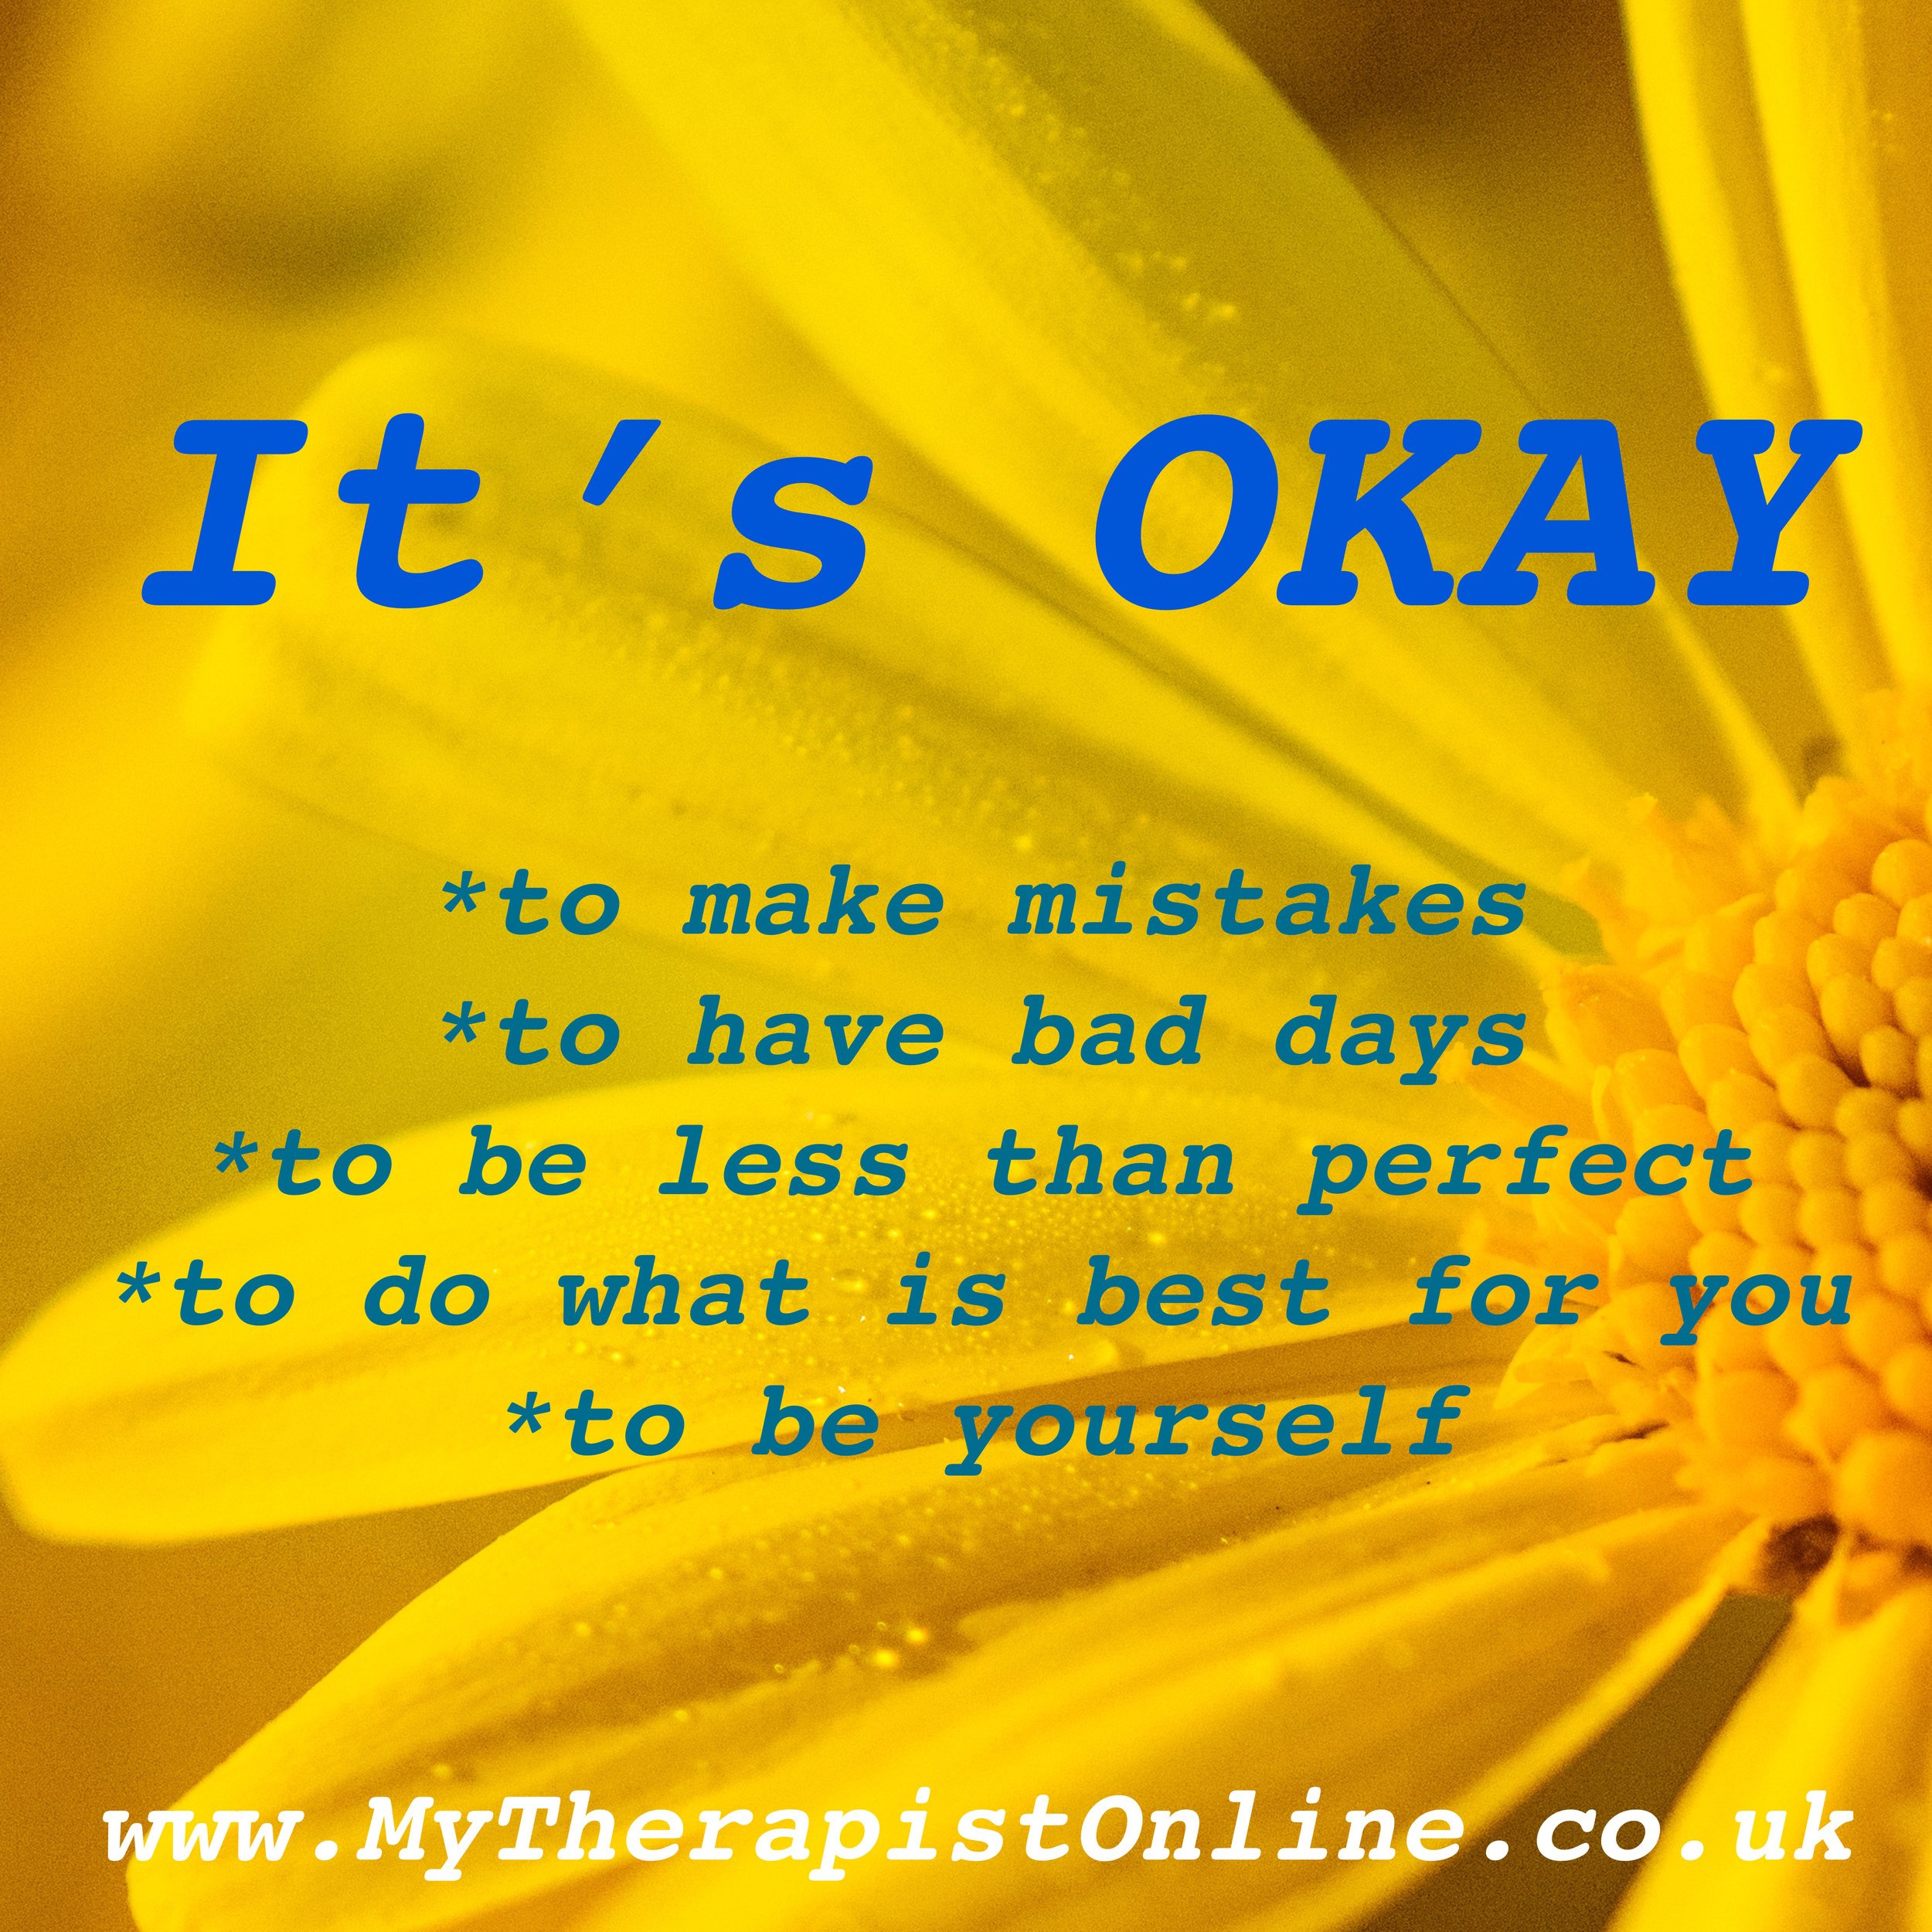 Online Therapy UK - My Therapist Online